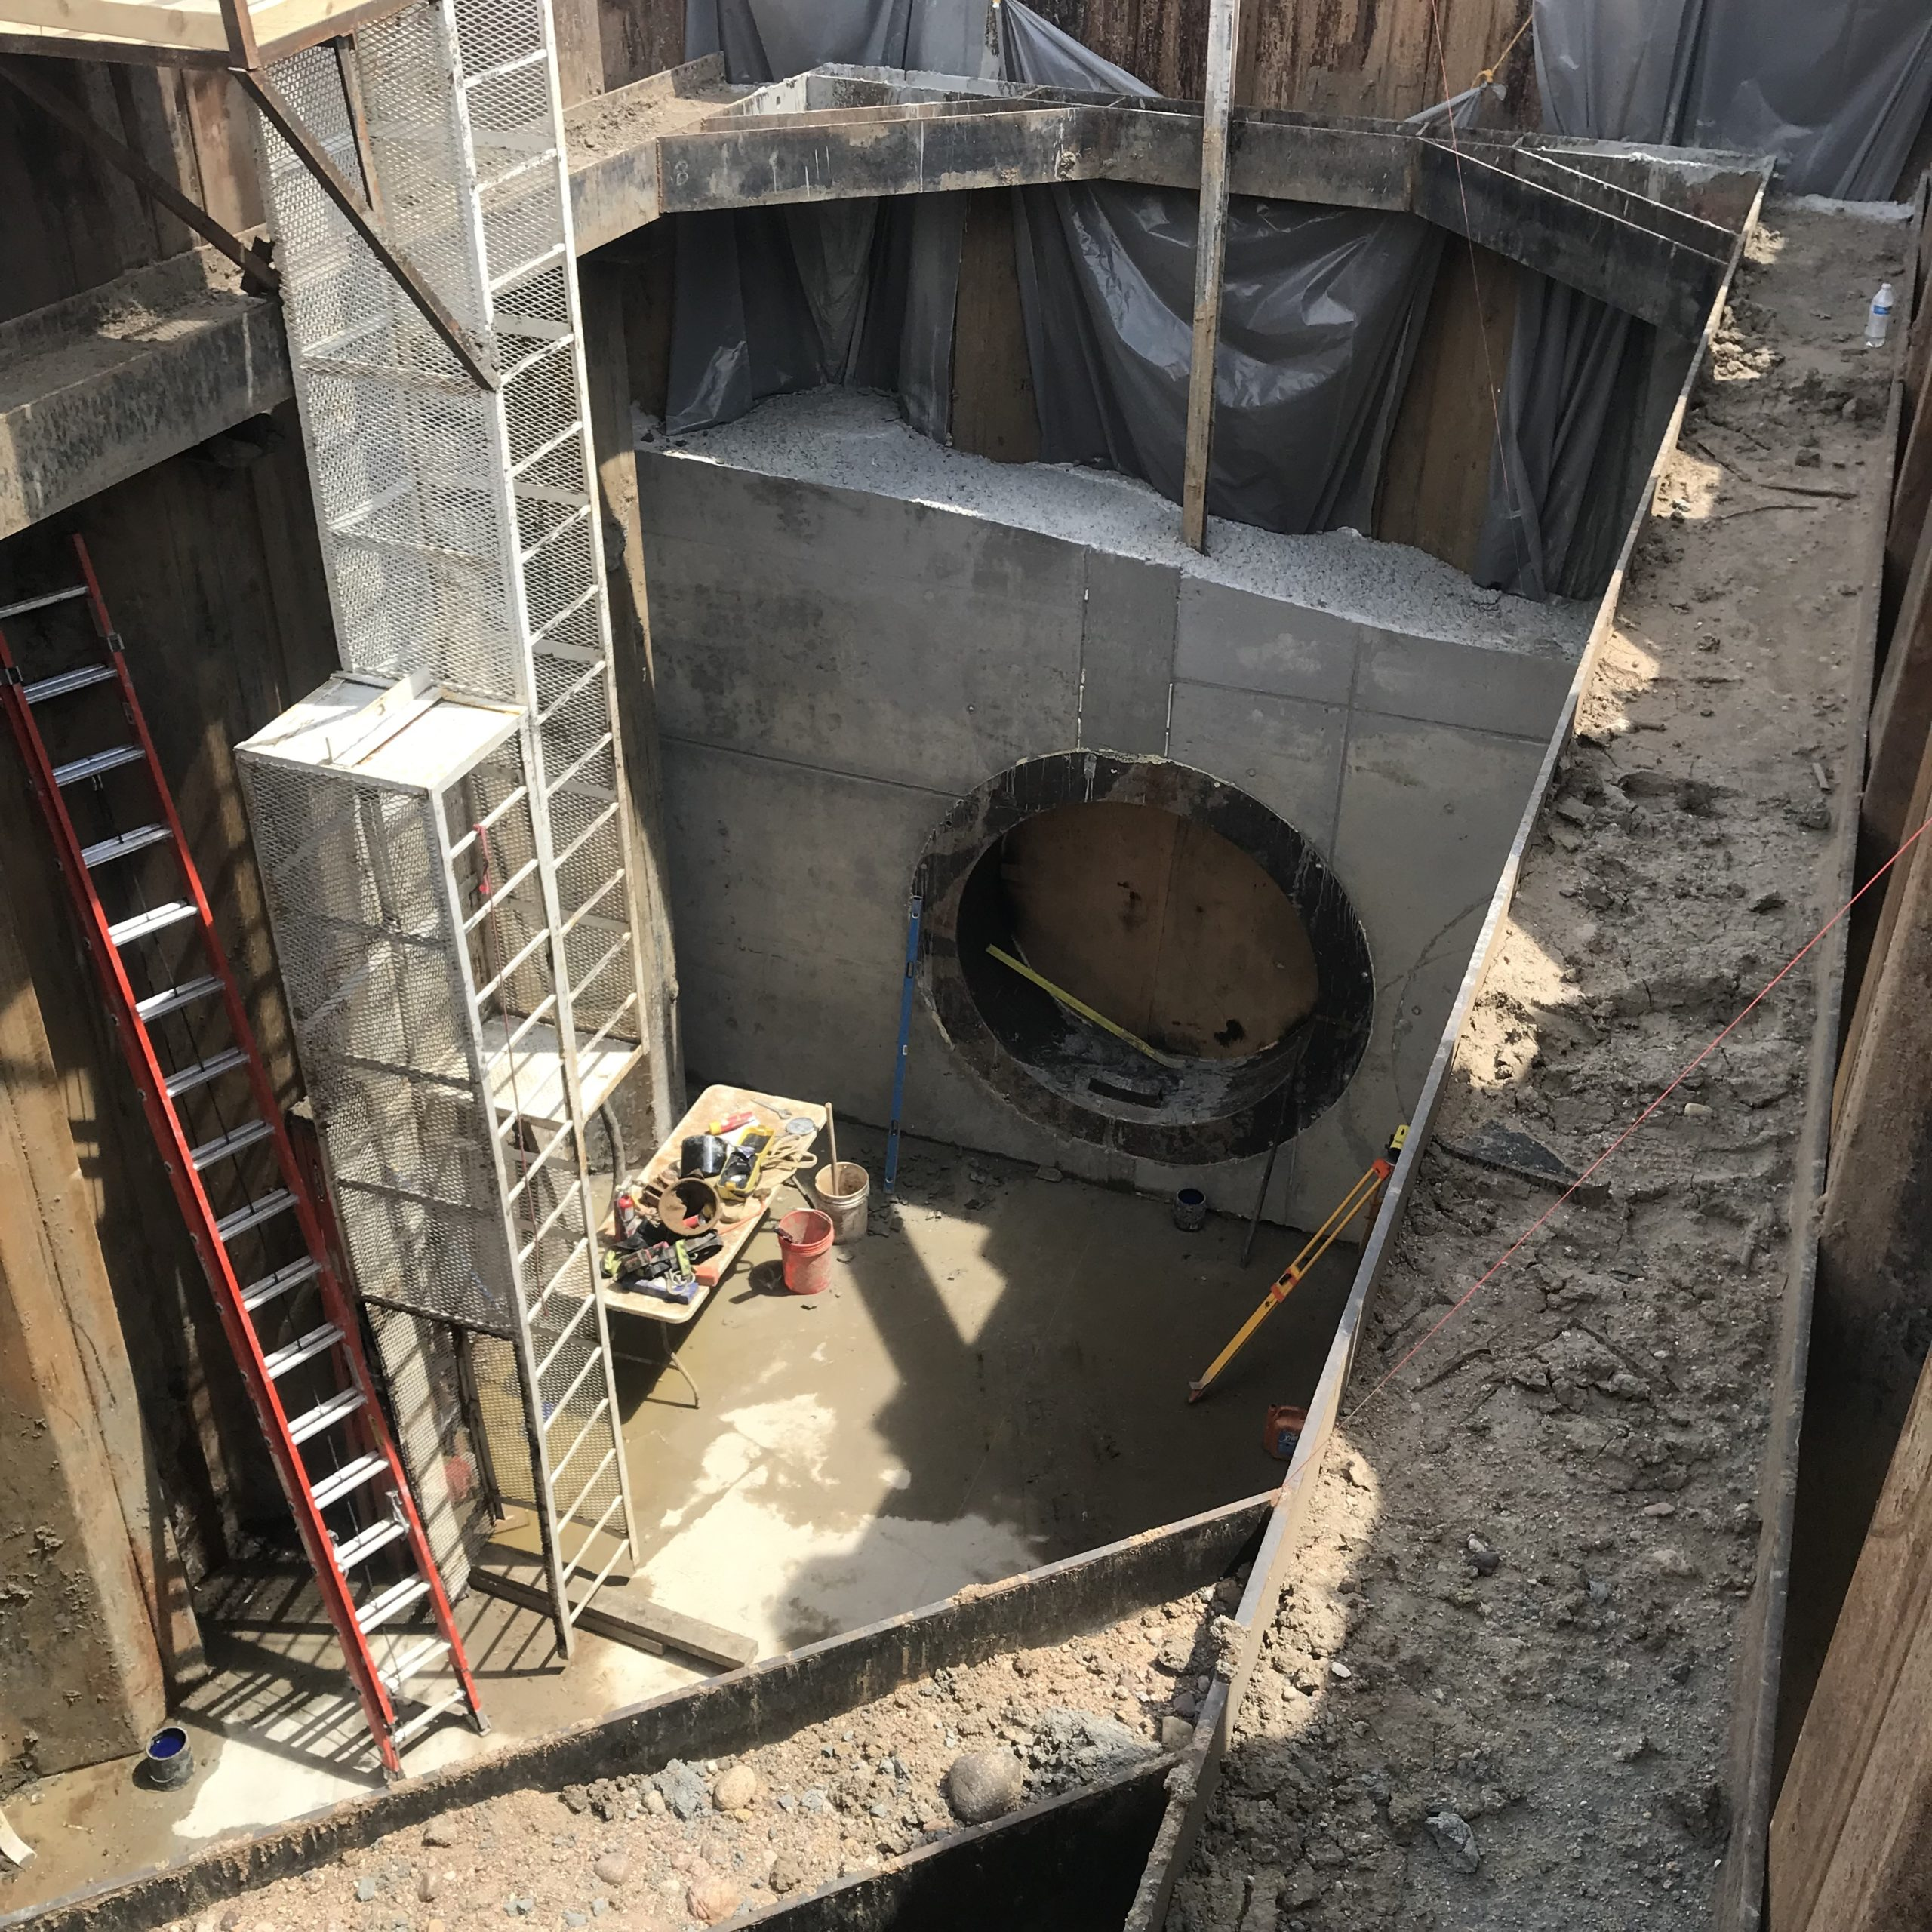 A large pit in the ground with ladders, buckets and other equipment where a drilling and tunneling machine will begin its work.